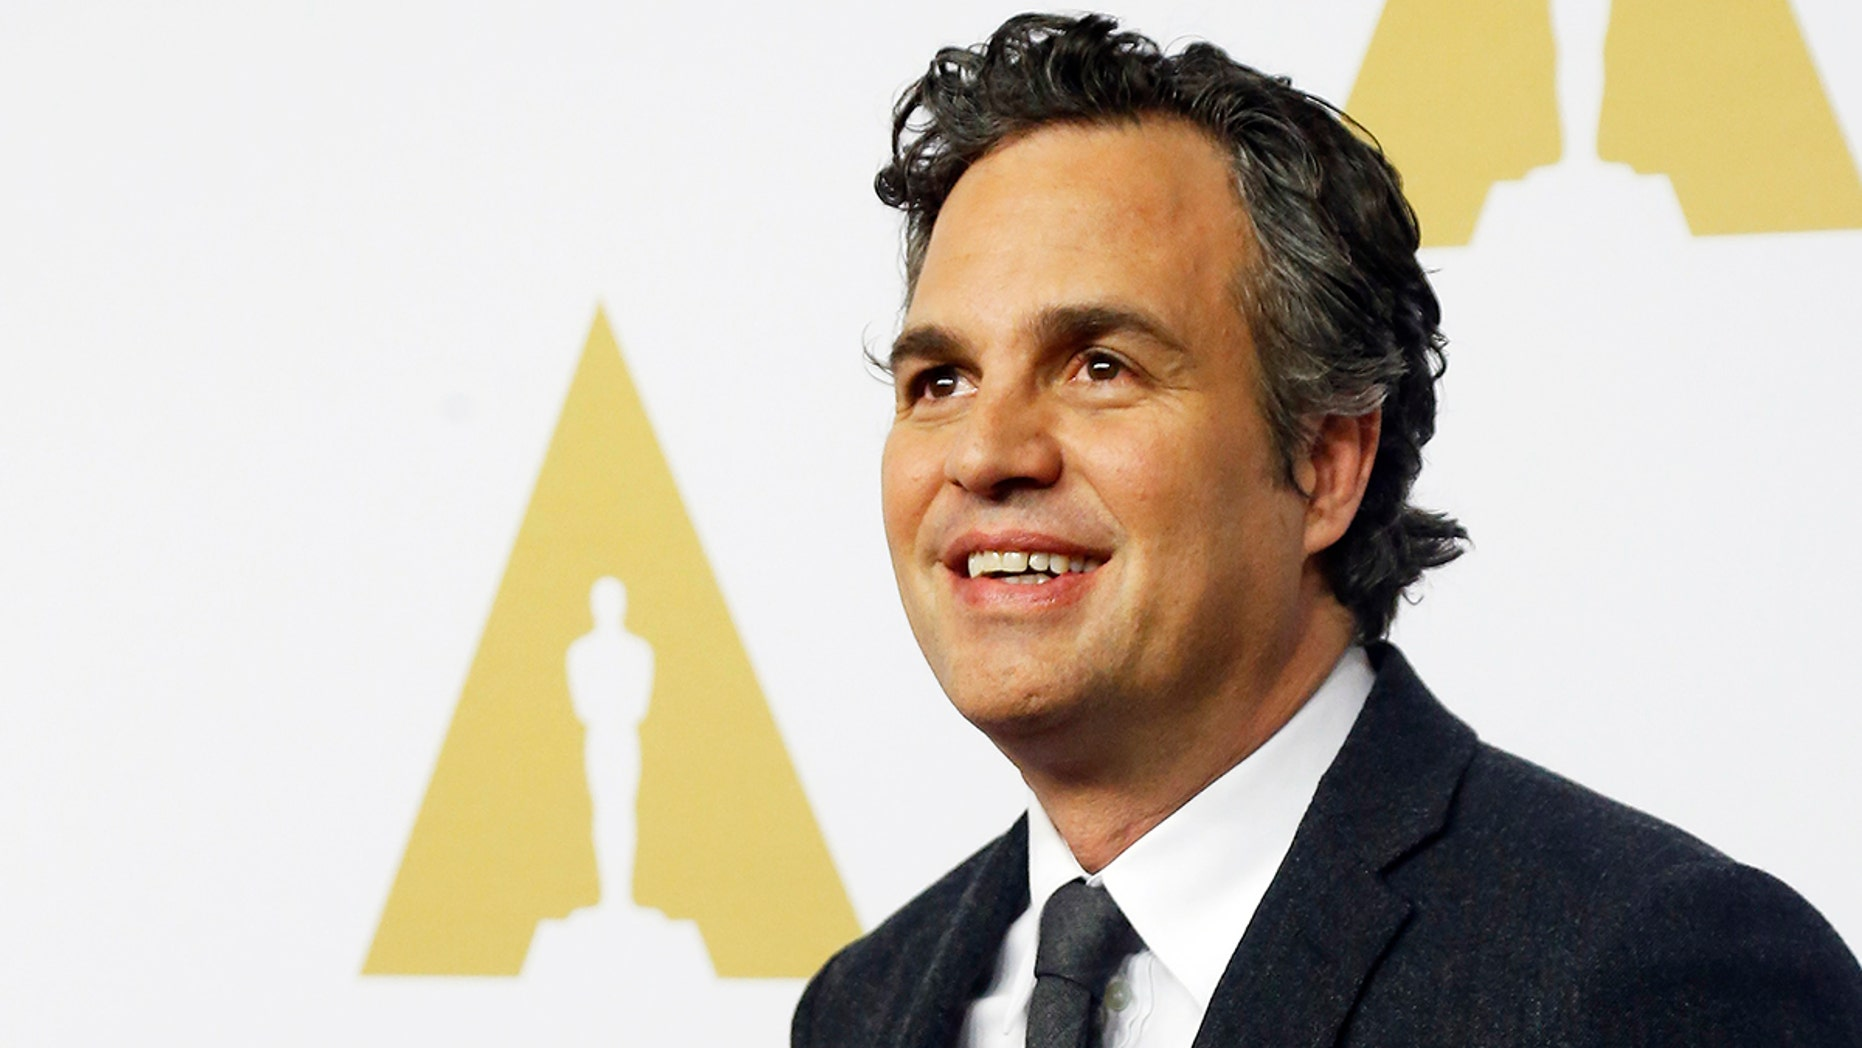 Actor Mark Ruffalo arrives at the 88th Academy Awards nominees luncheon in Beverly Hills, California February 8, 2016.  REUTERS/Mario Anzuoni - TB3EC281LYOVJ